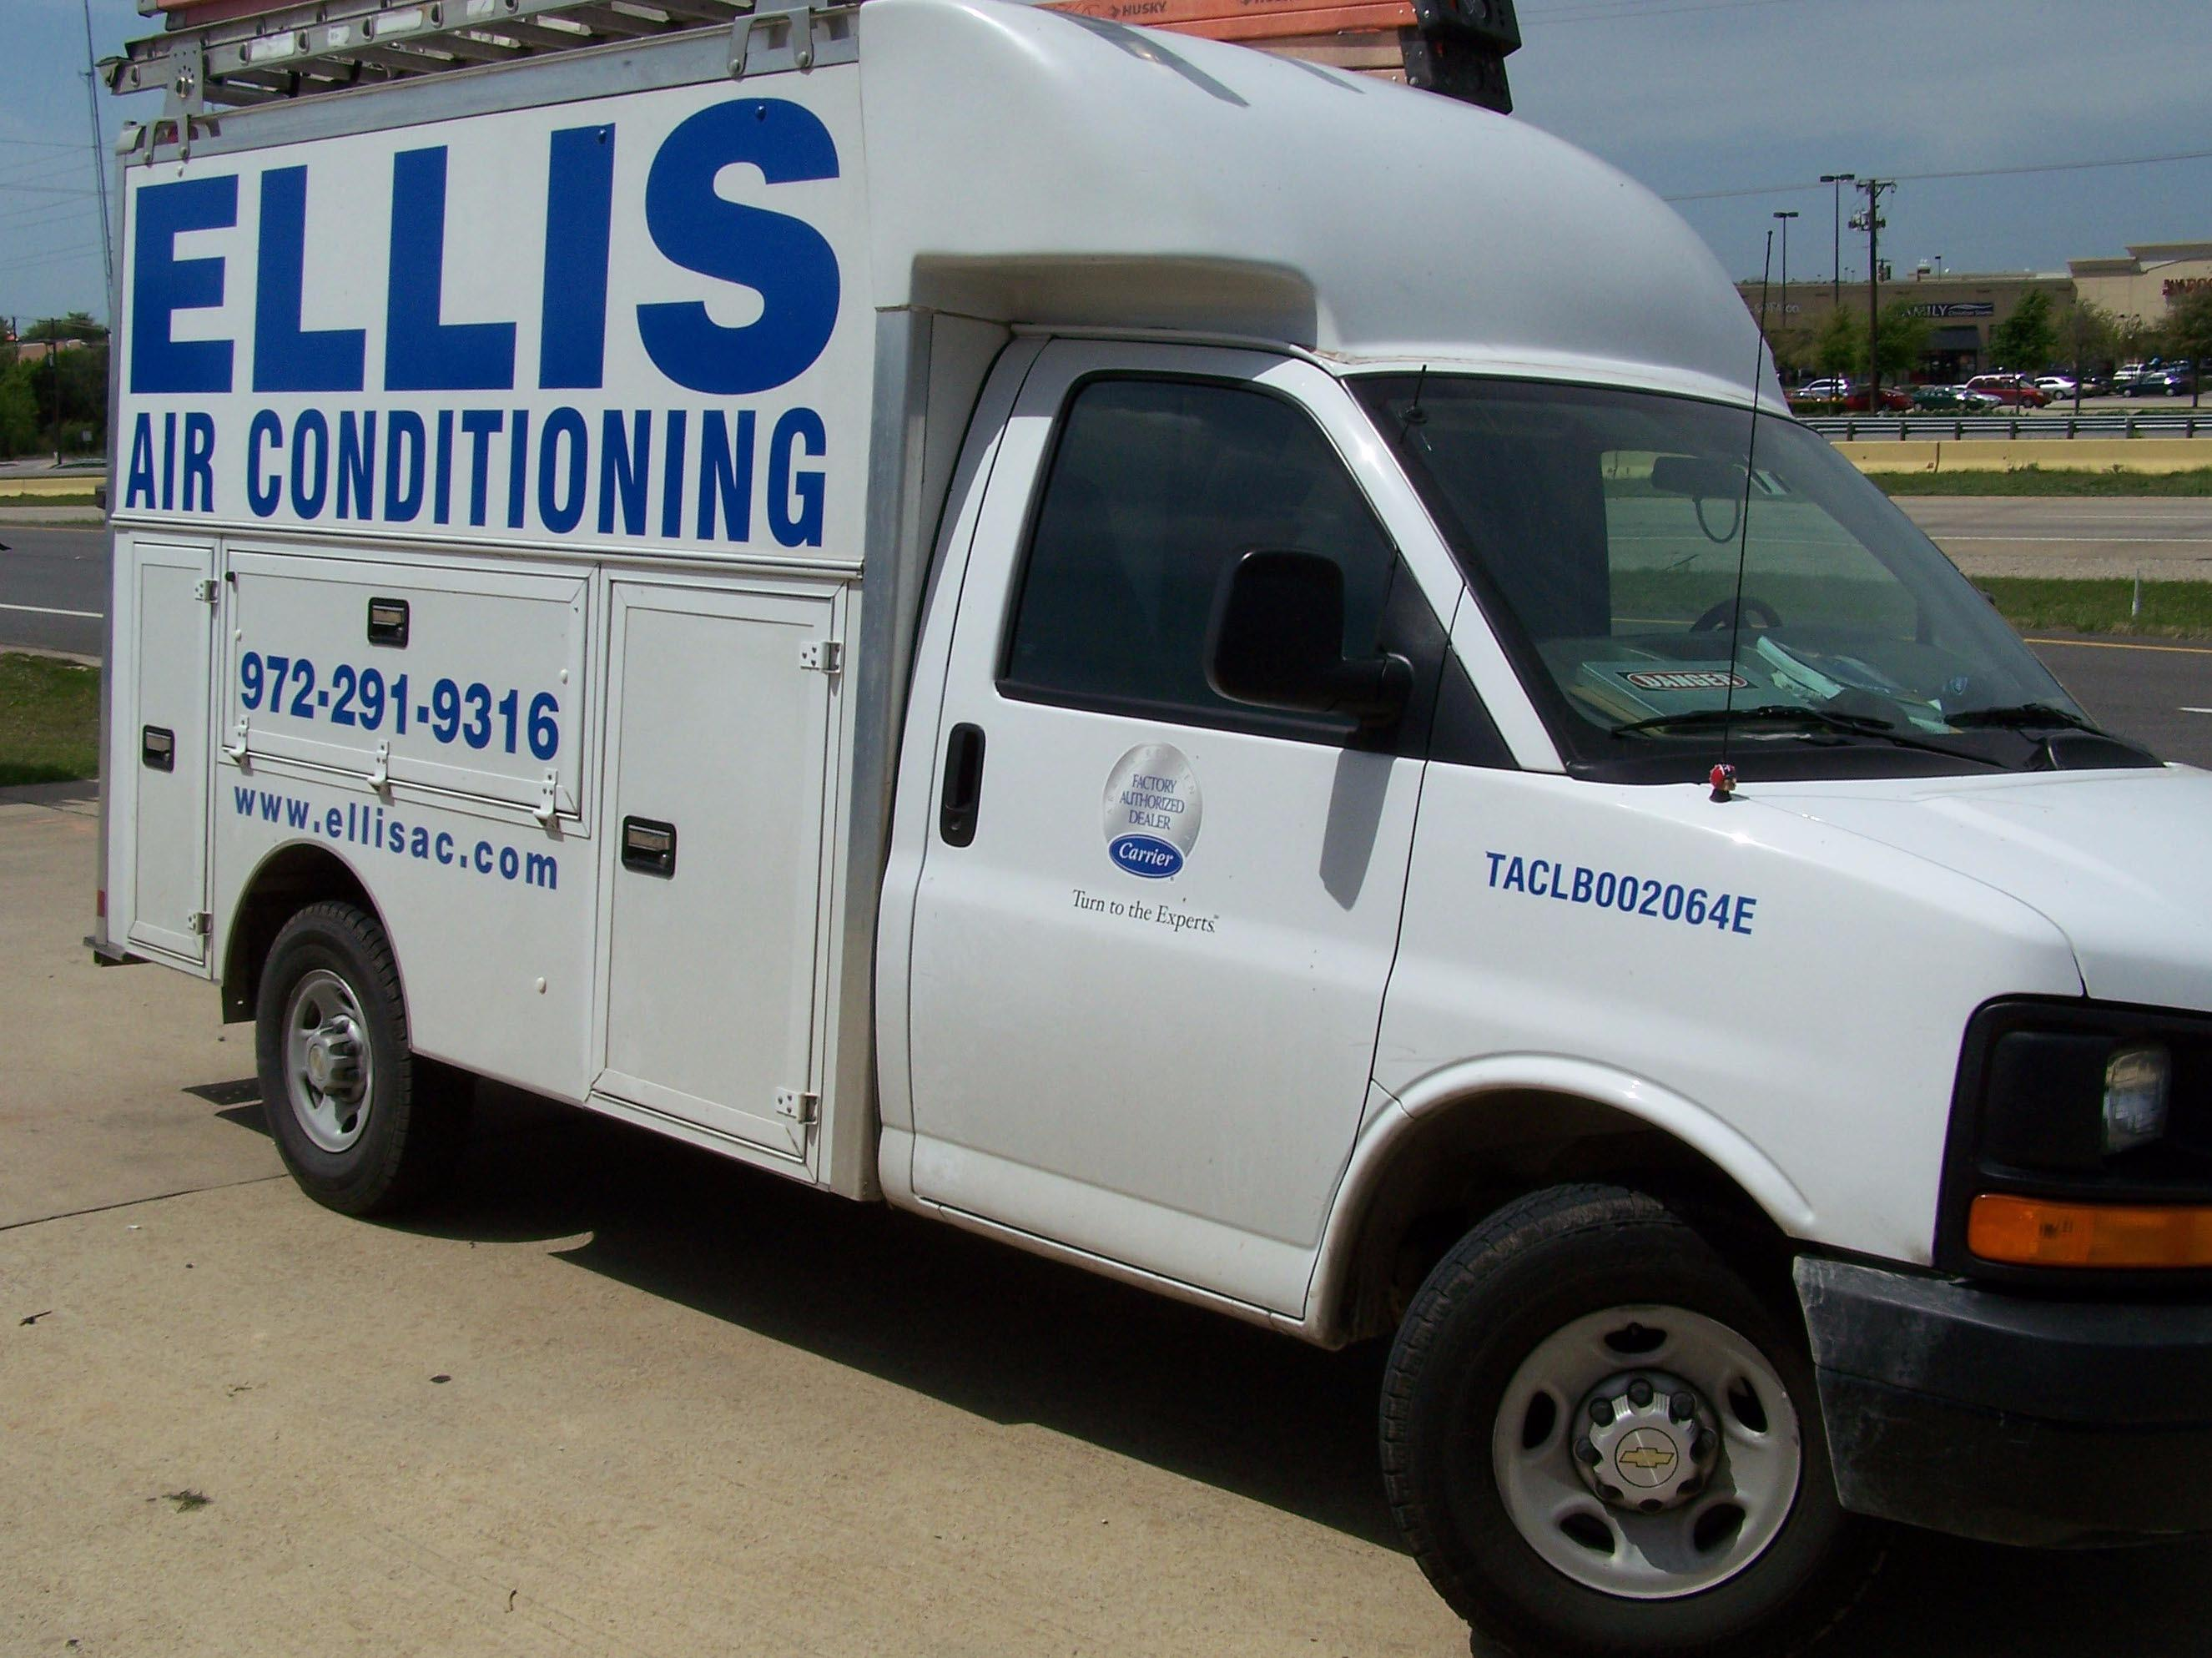 Ellis Air Conditioning and Heating image 4